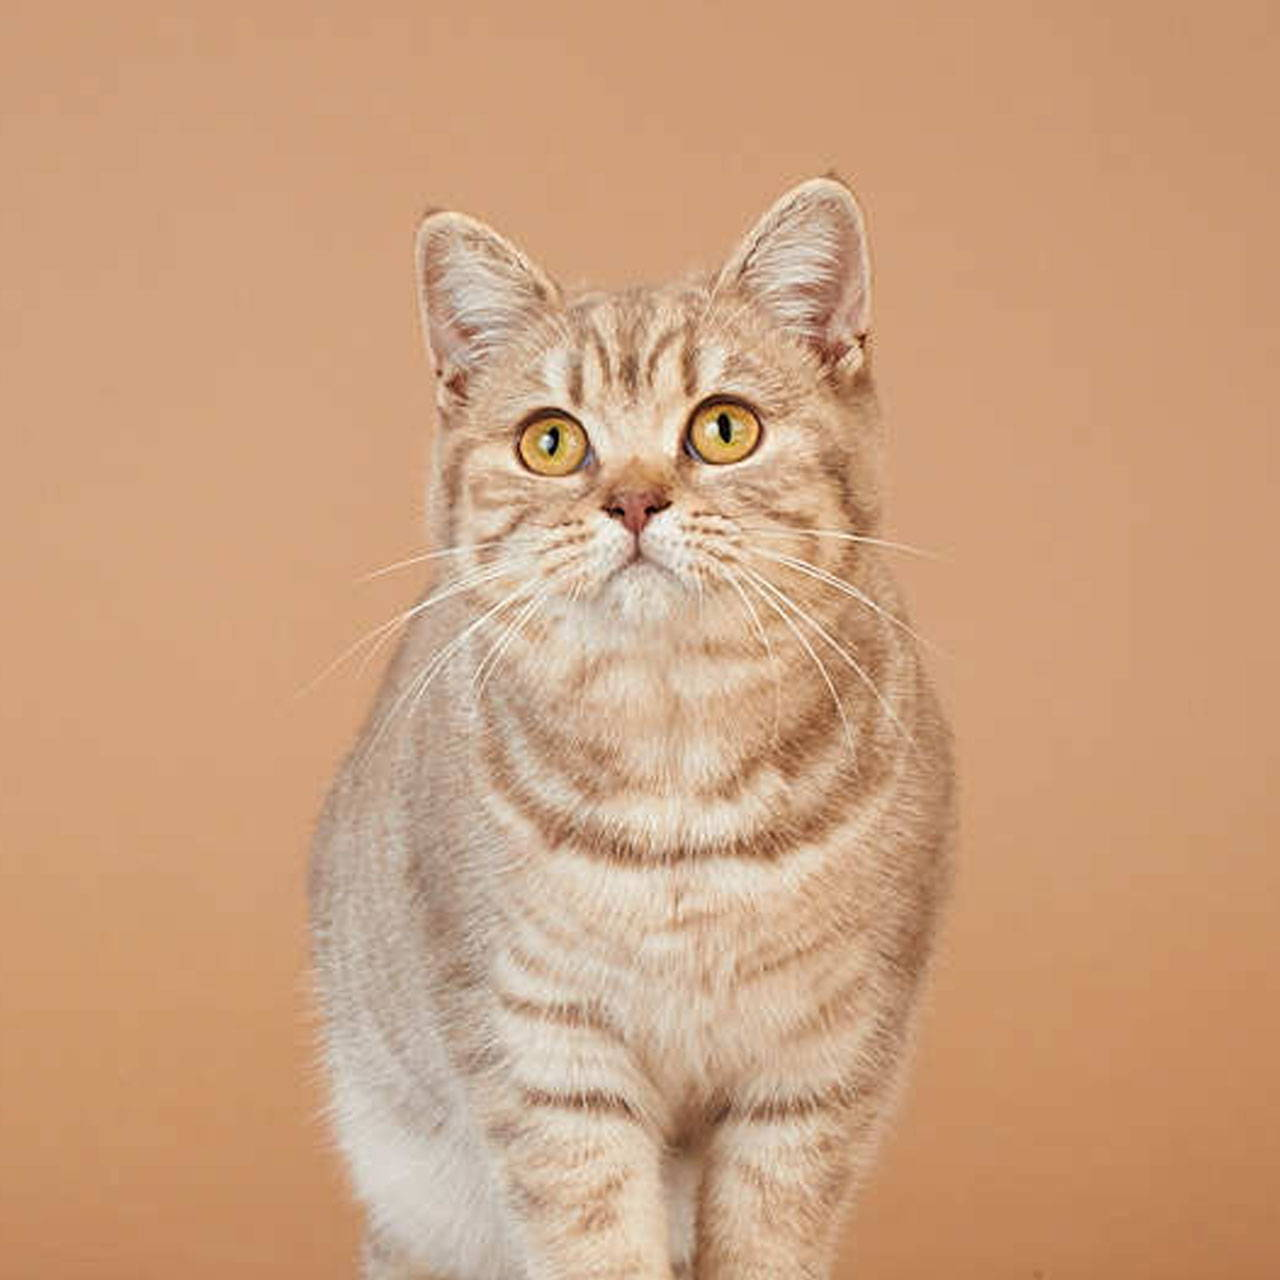 Lilly the British Shorthair